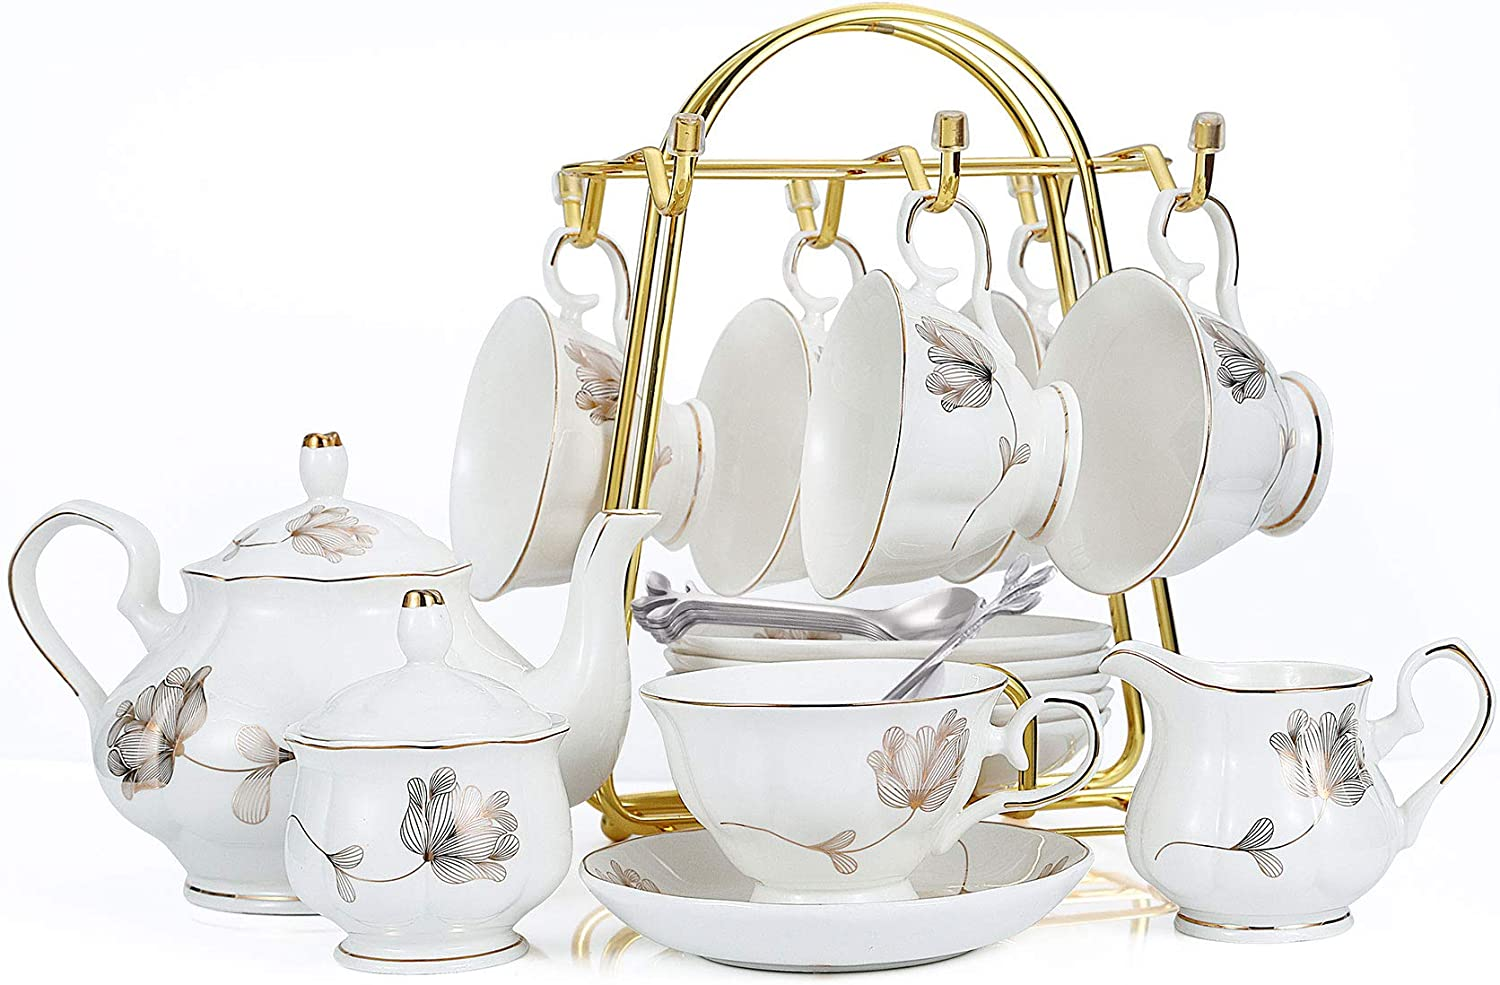 21-Piece Porcelain Ceramic Coffee Tea Gift Sets, Cups& Saucer Service for 6, Teapot, Sugar Bowl, Creamer Pitcher and 6 Teaspoons